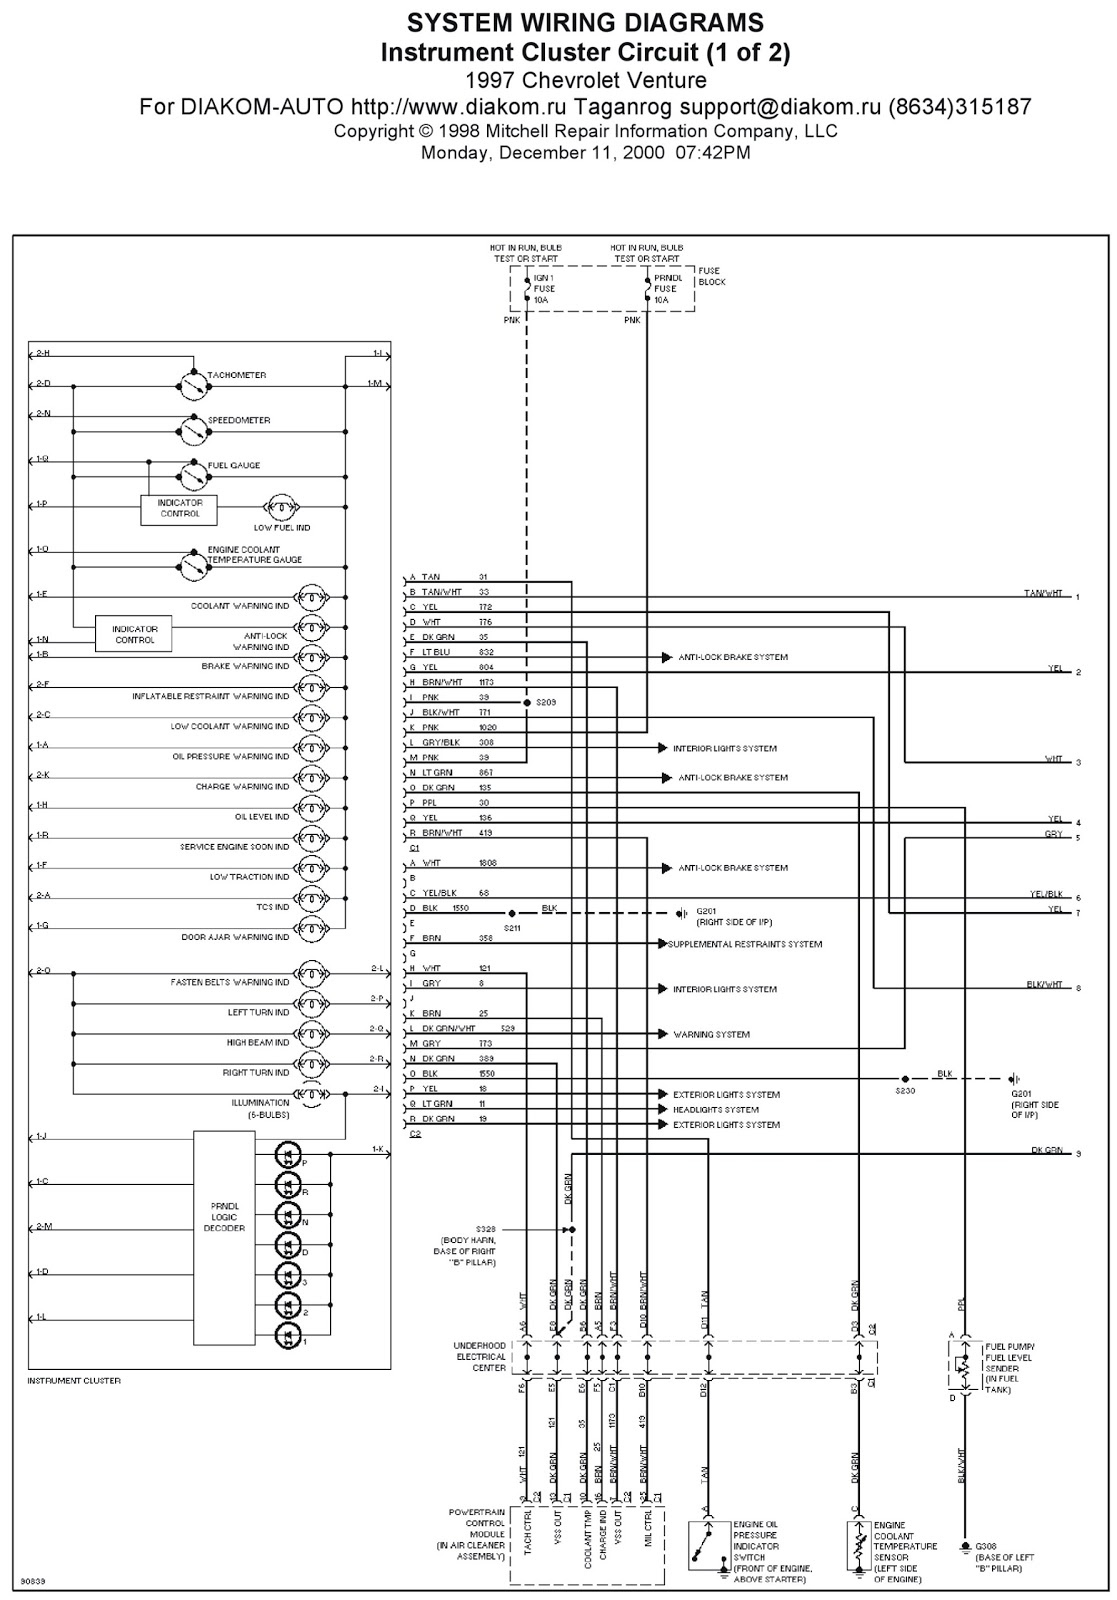 1997 Chevrolet Venture Instrument Cluster Circuit System Wiring Diagrams | Schematic Wiring